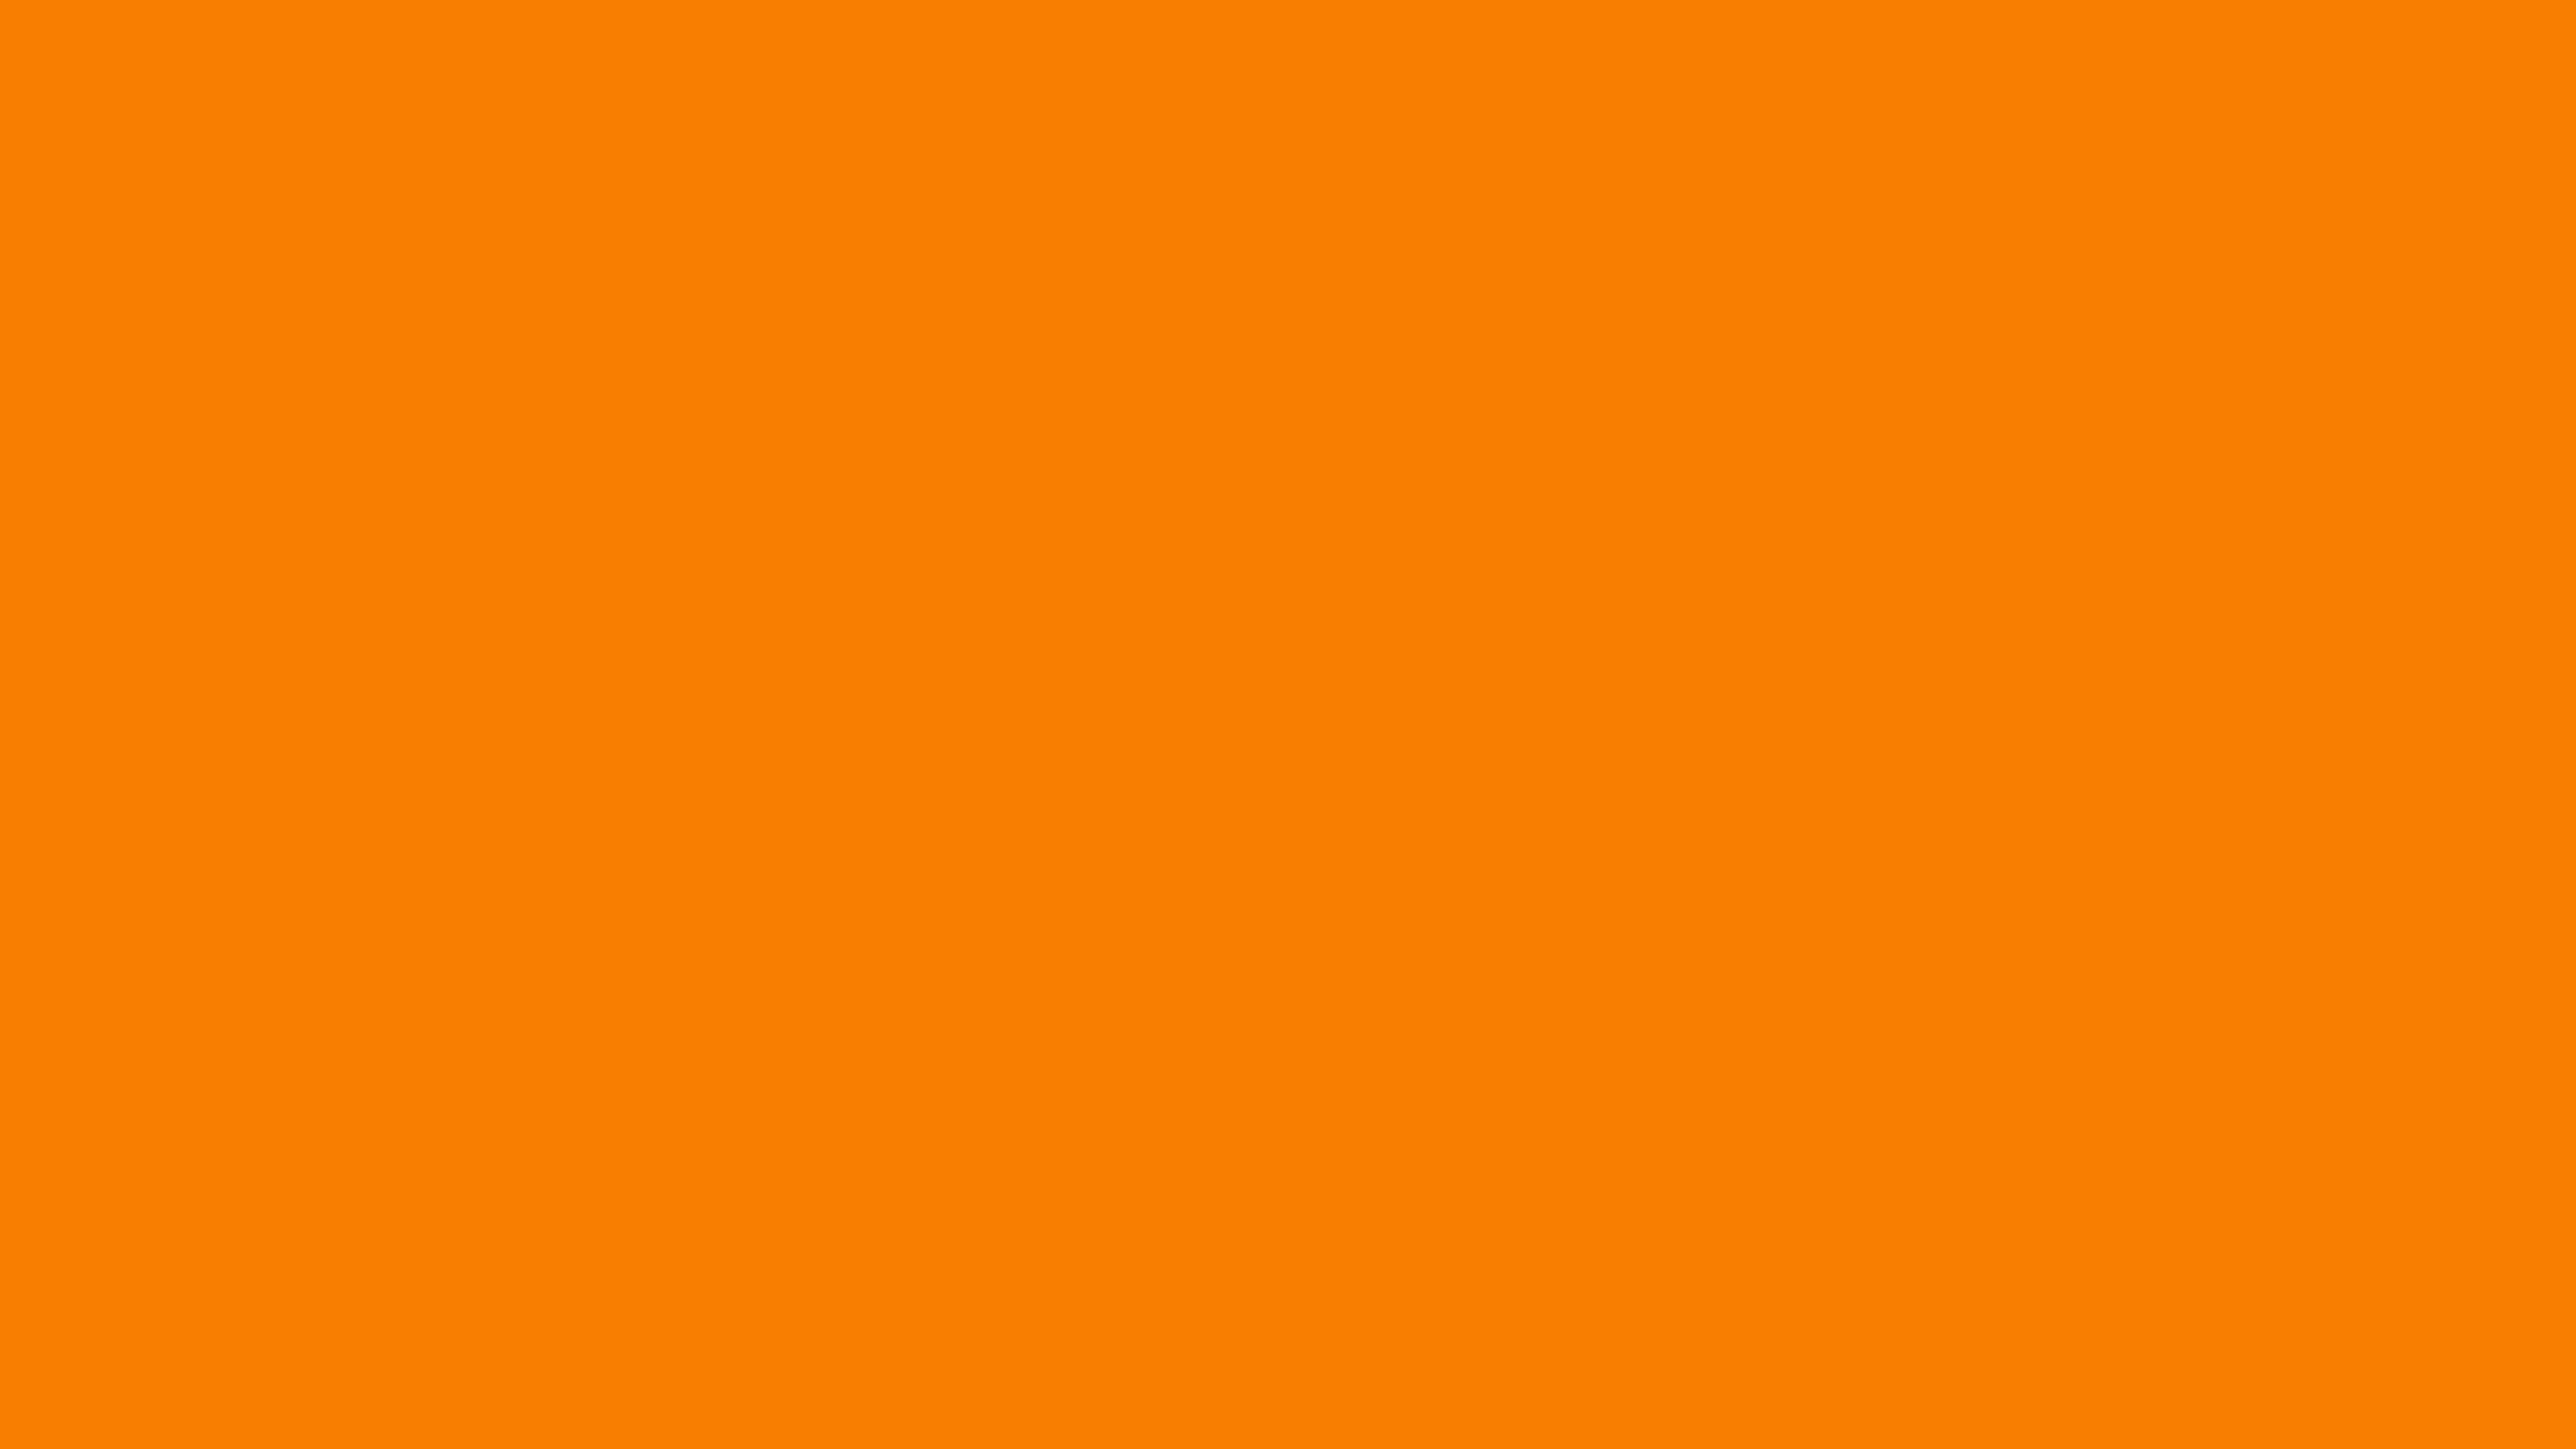 3840x2160 University Of Tennessee Orange Solid Color Background